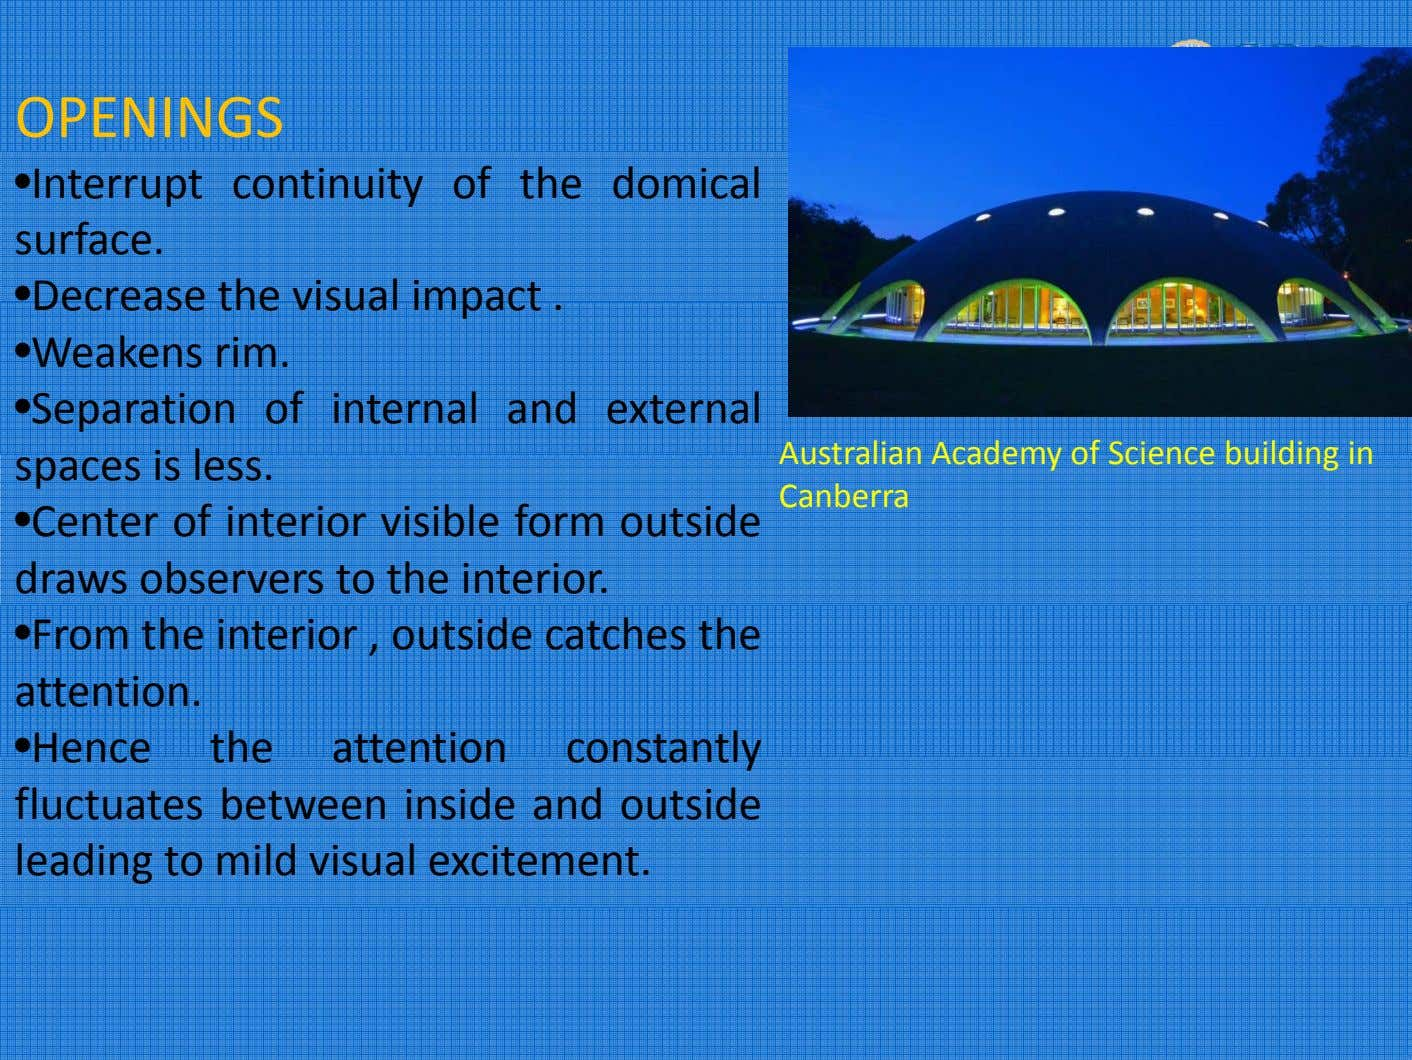 OPENINGS • Interrupt continuity of the domical surface. • Decrease the visual im p act